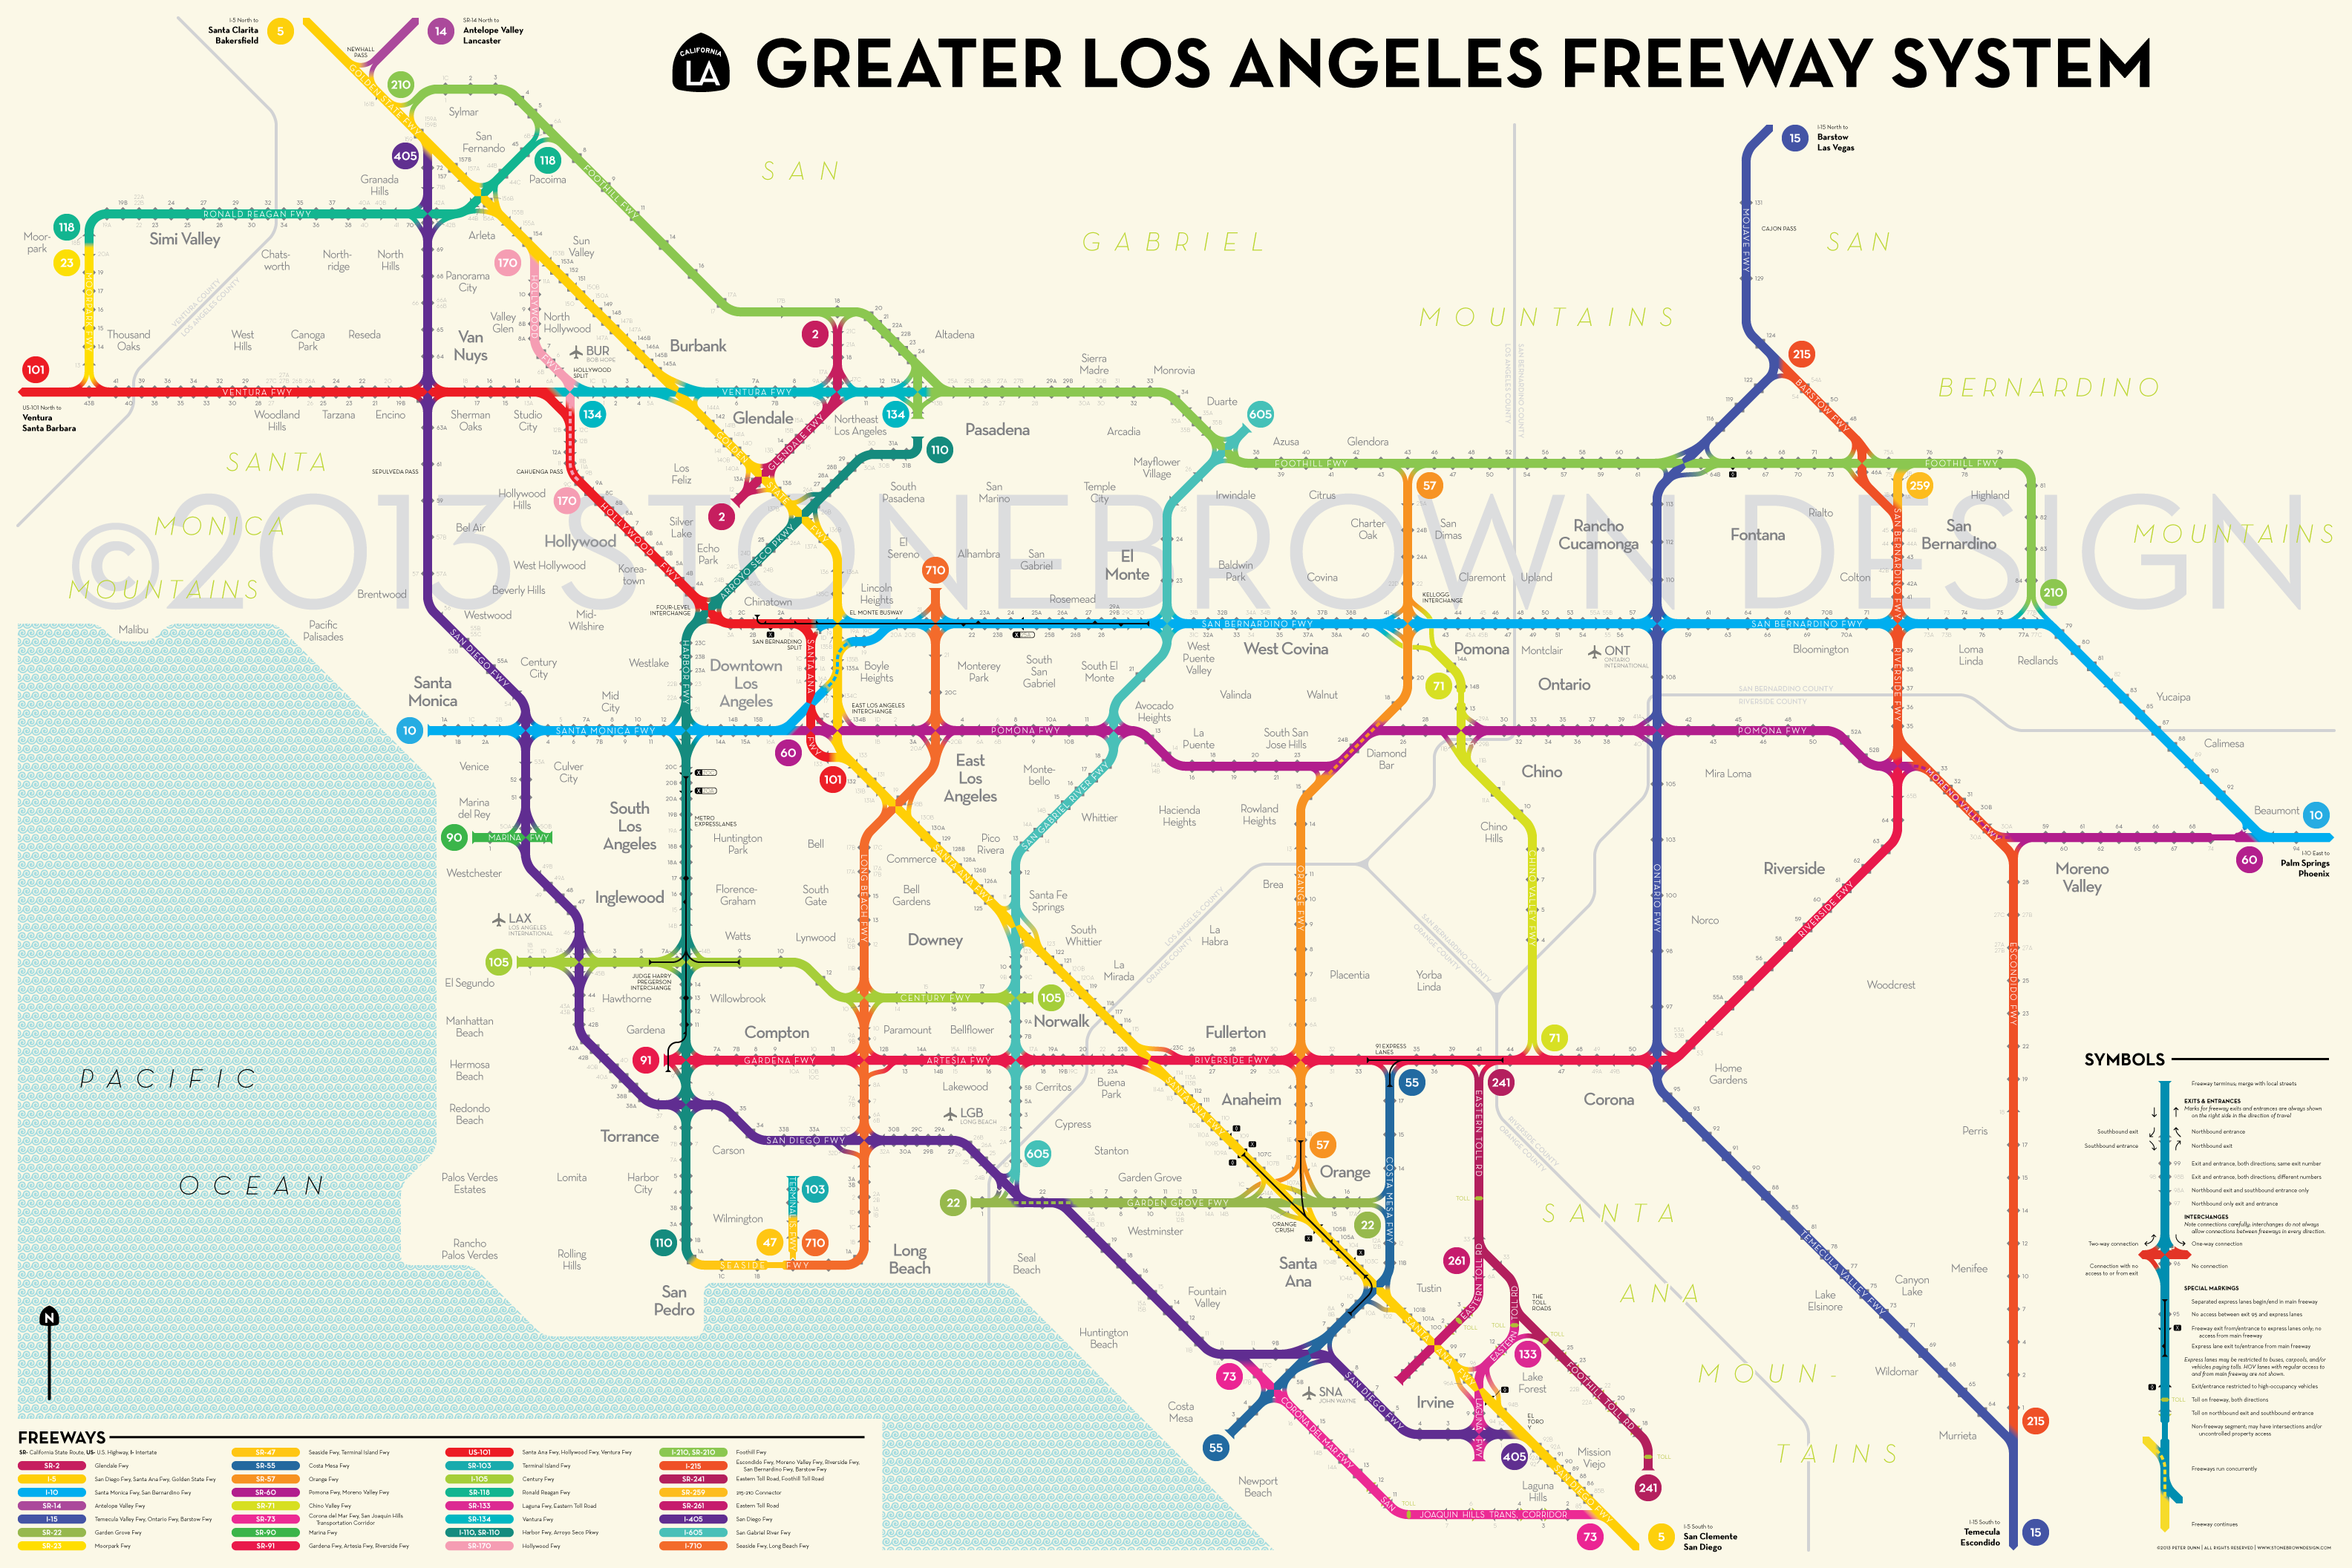 US  San Diego Original Final Routes Show Posts Parsa Maps - Los angeles map funny